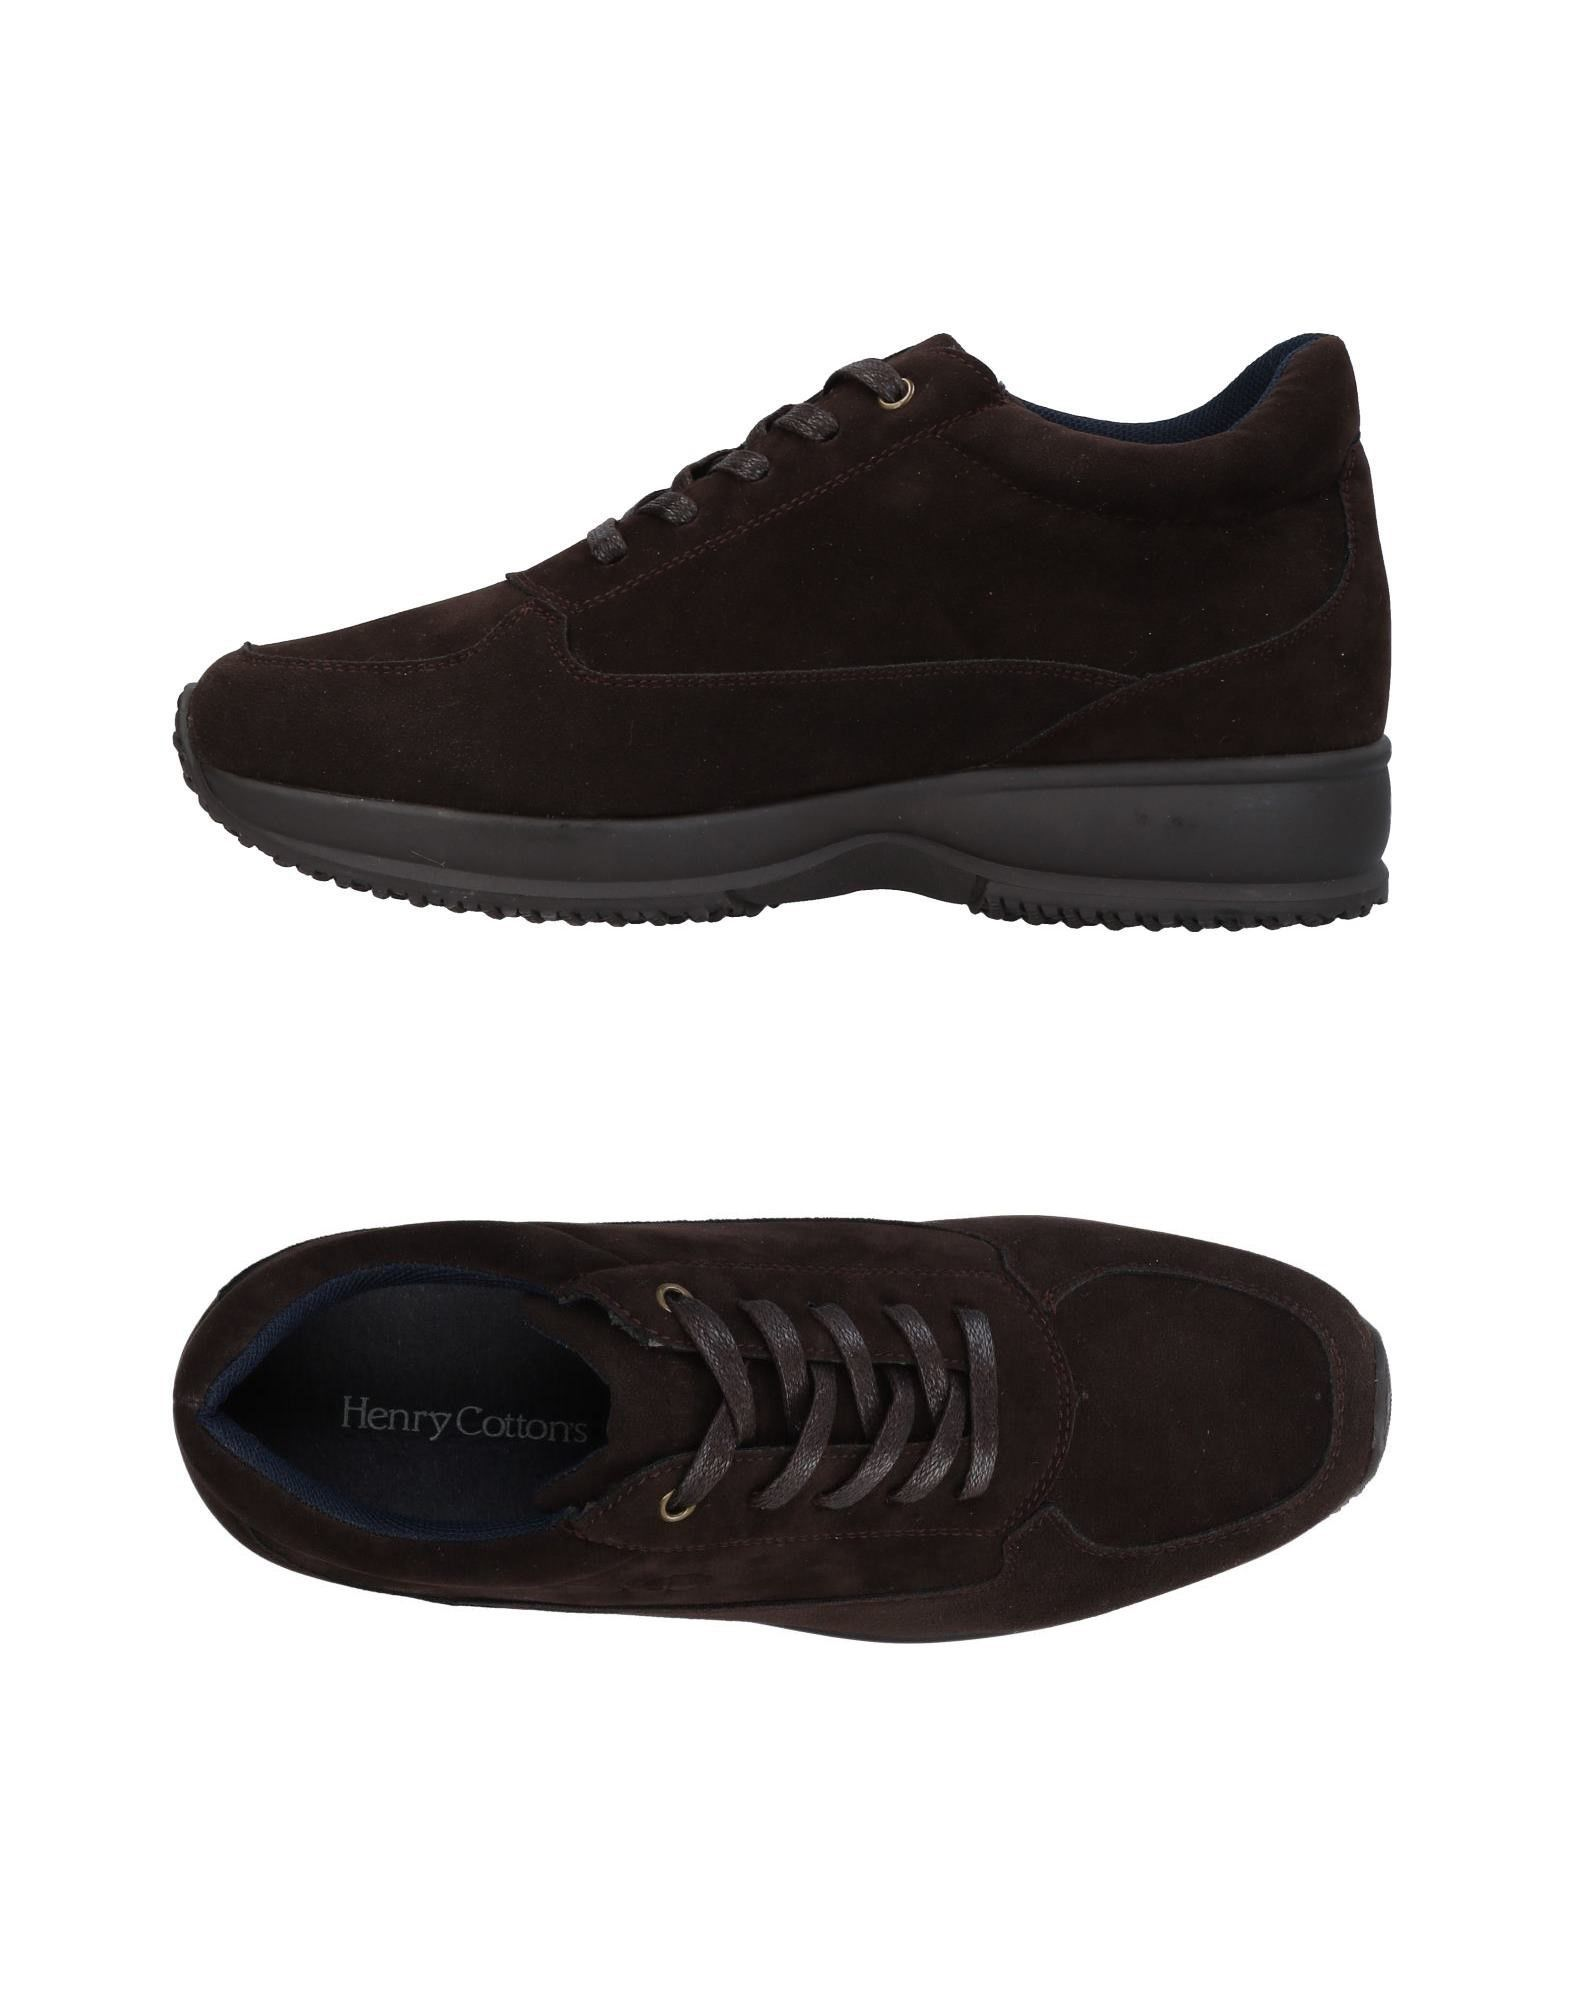 Sneakers 11454114HM Henry Cotton's Uomo - 11454114HM Sneakers 0af2d8